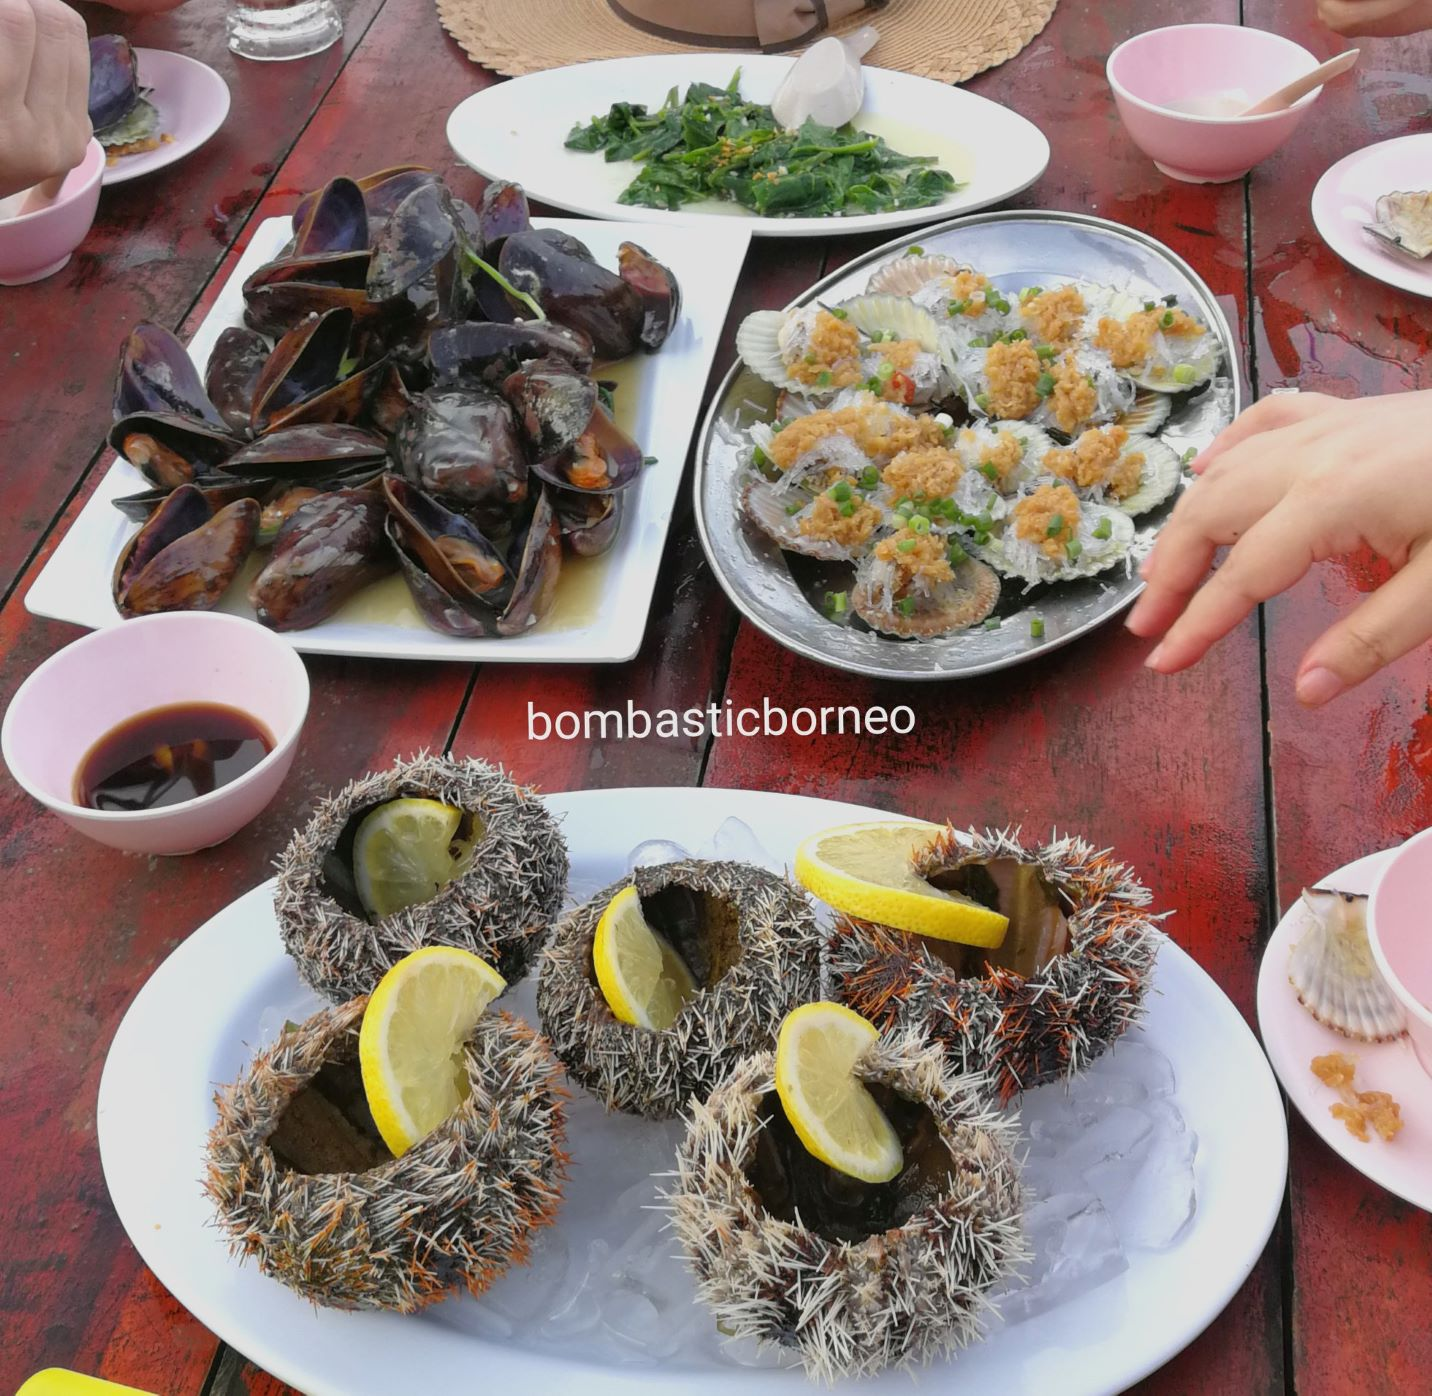 makanan laut, seafood, backpackers, destination, Semporna, Tawau, Sabah, Malaysia, Tourism, tourist attraction, travel guide, Trans Border, Borneo,